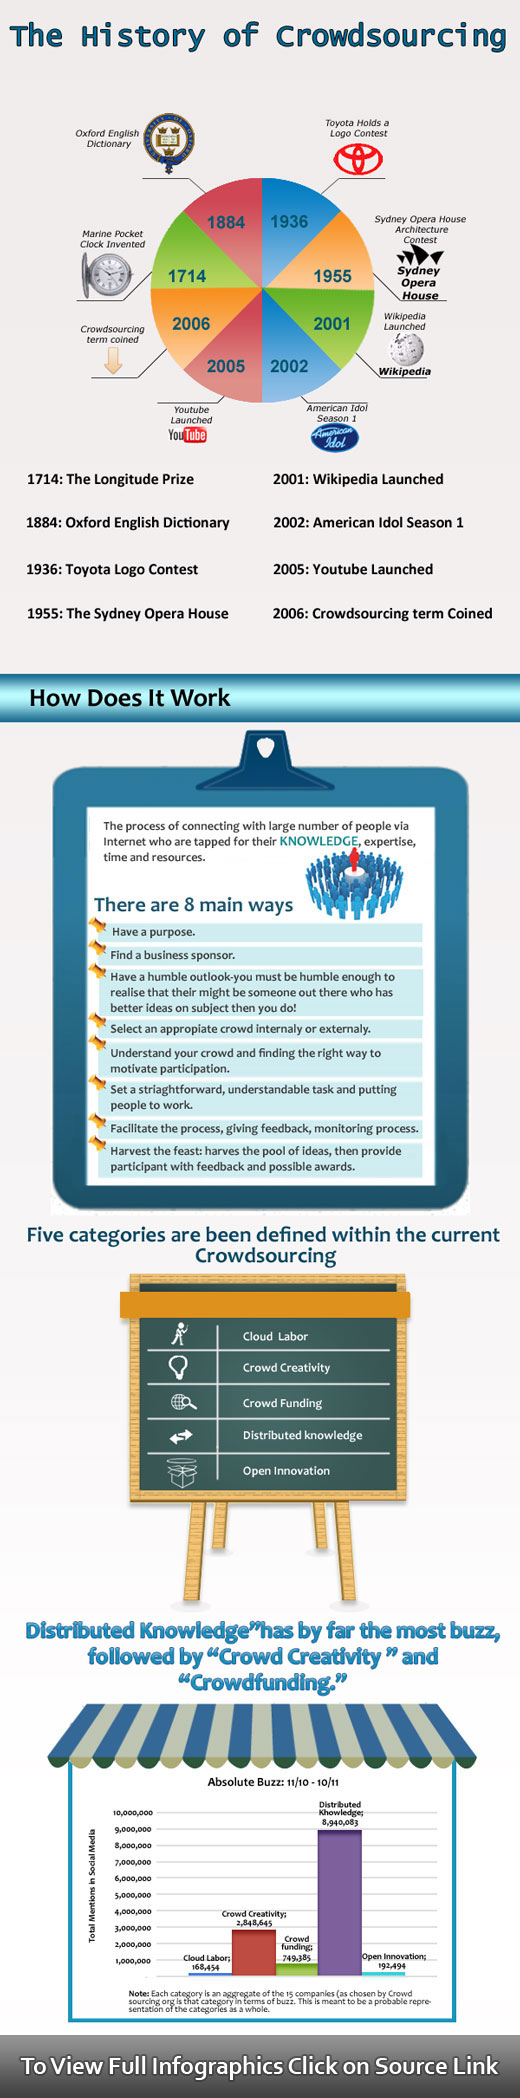 Crowdsourcing History-Infographic